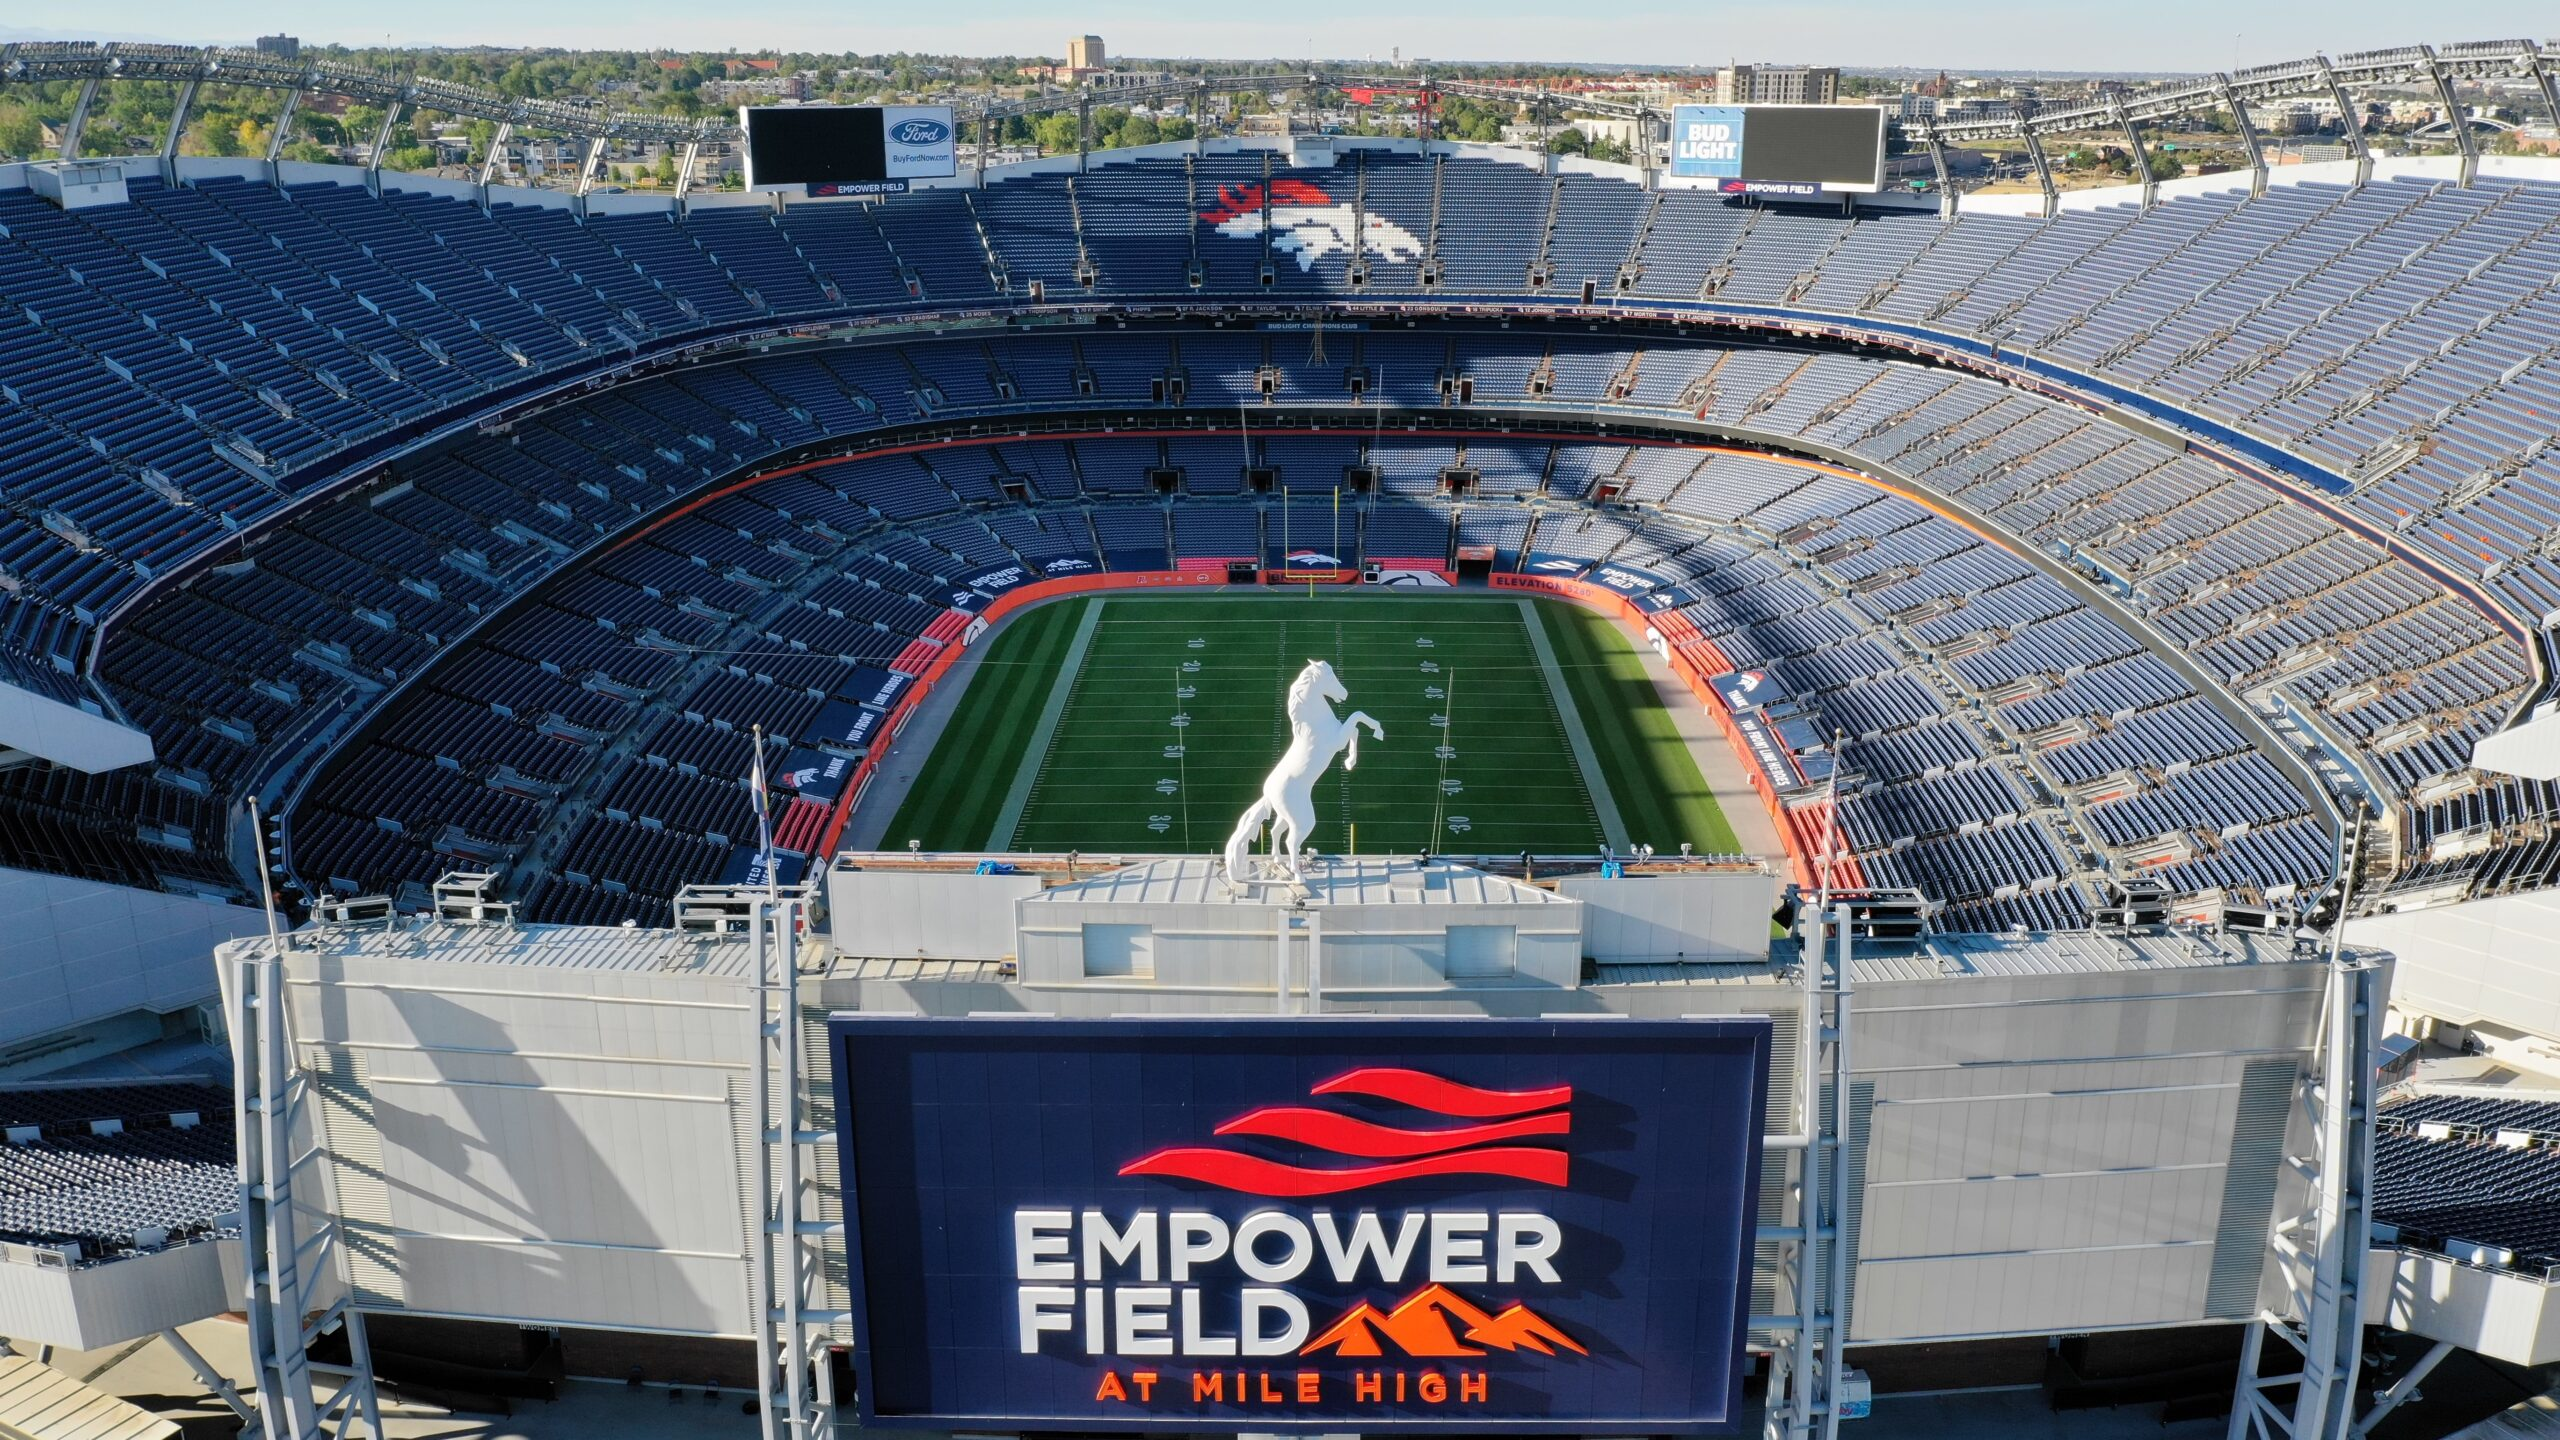 Aerial drone imagery and video of Empower Field at Mile High Stadium in Denver, Colorado